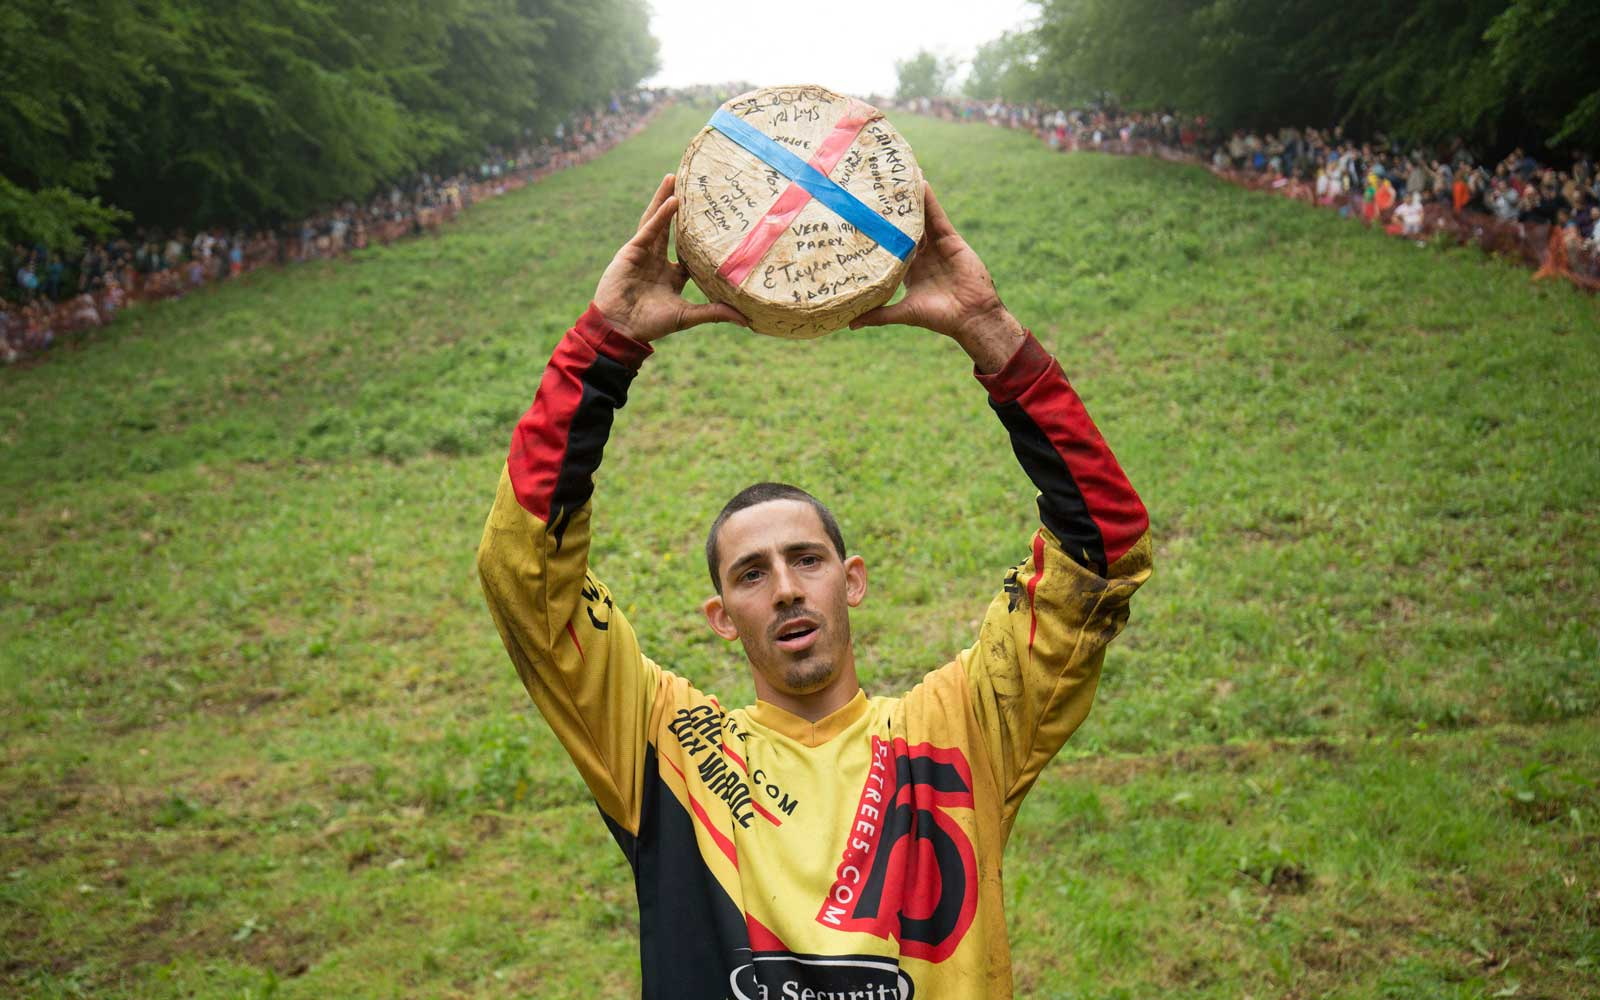 Chris Anderson, 30, who has broken the all-time record for the most cheeses won in the death-defying Cheese Rolling Race at Cooper's Hill in Brockworth, Gloucestershire